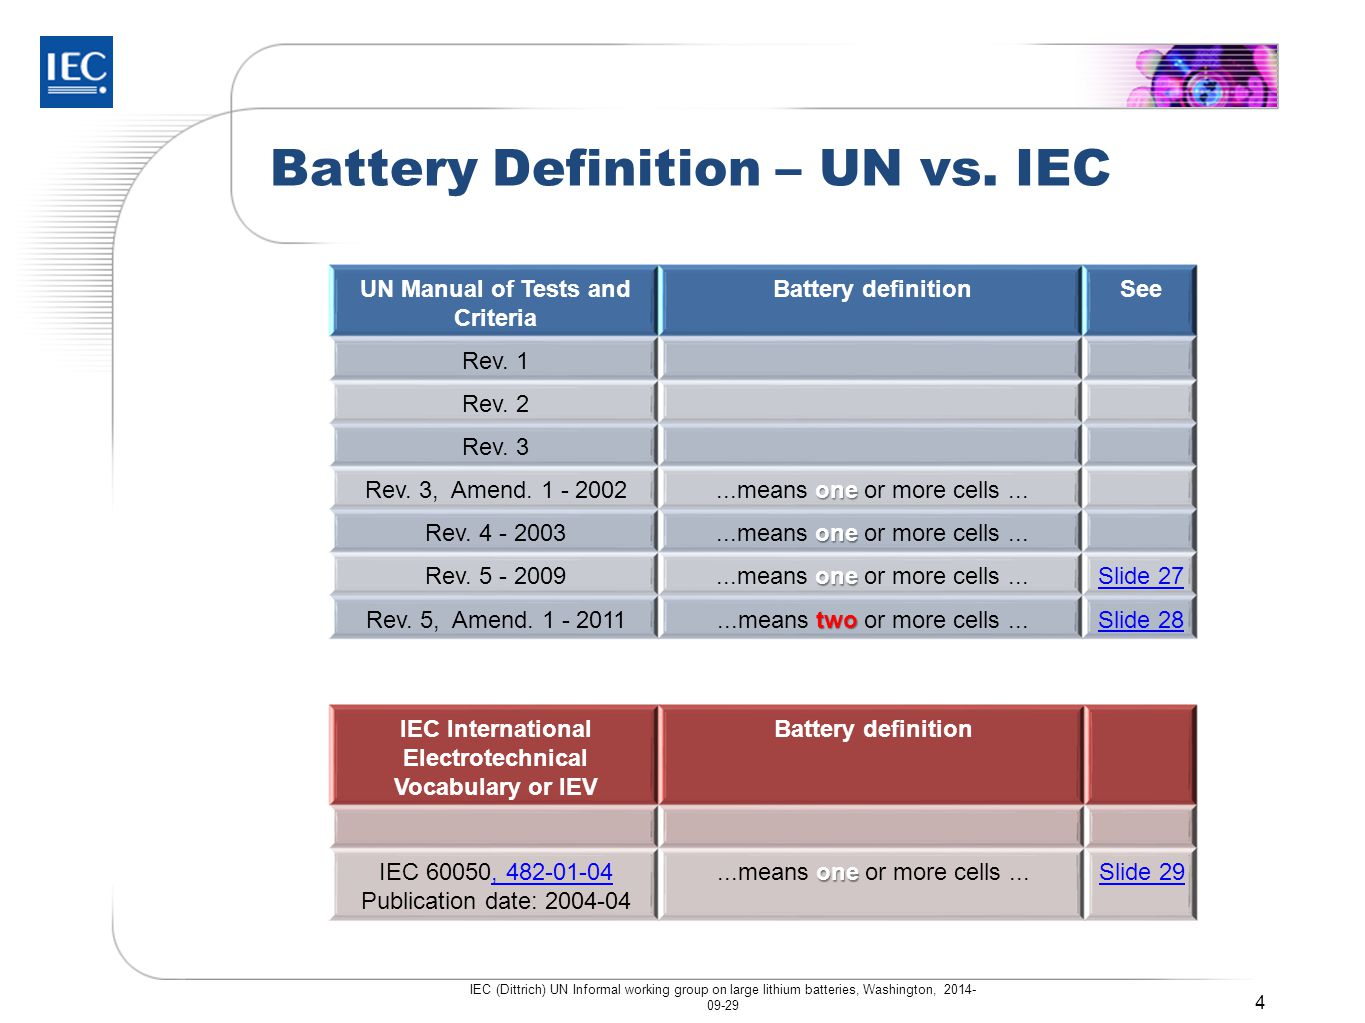 How can confusion be overcome with a harmonized battery definition.